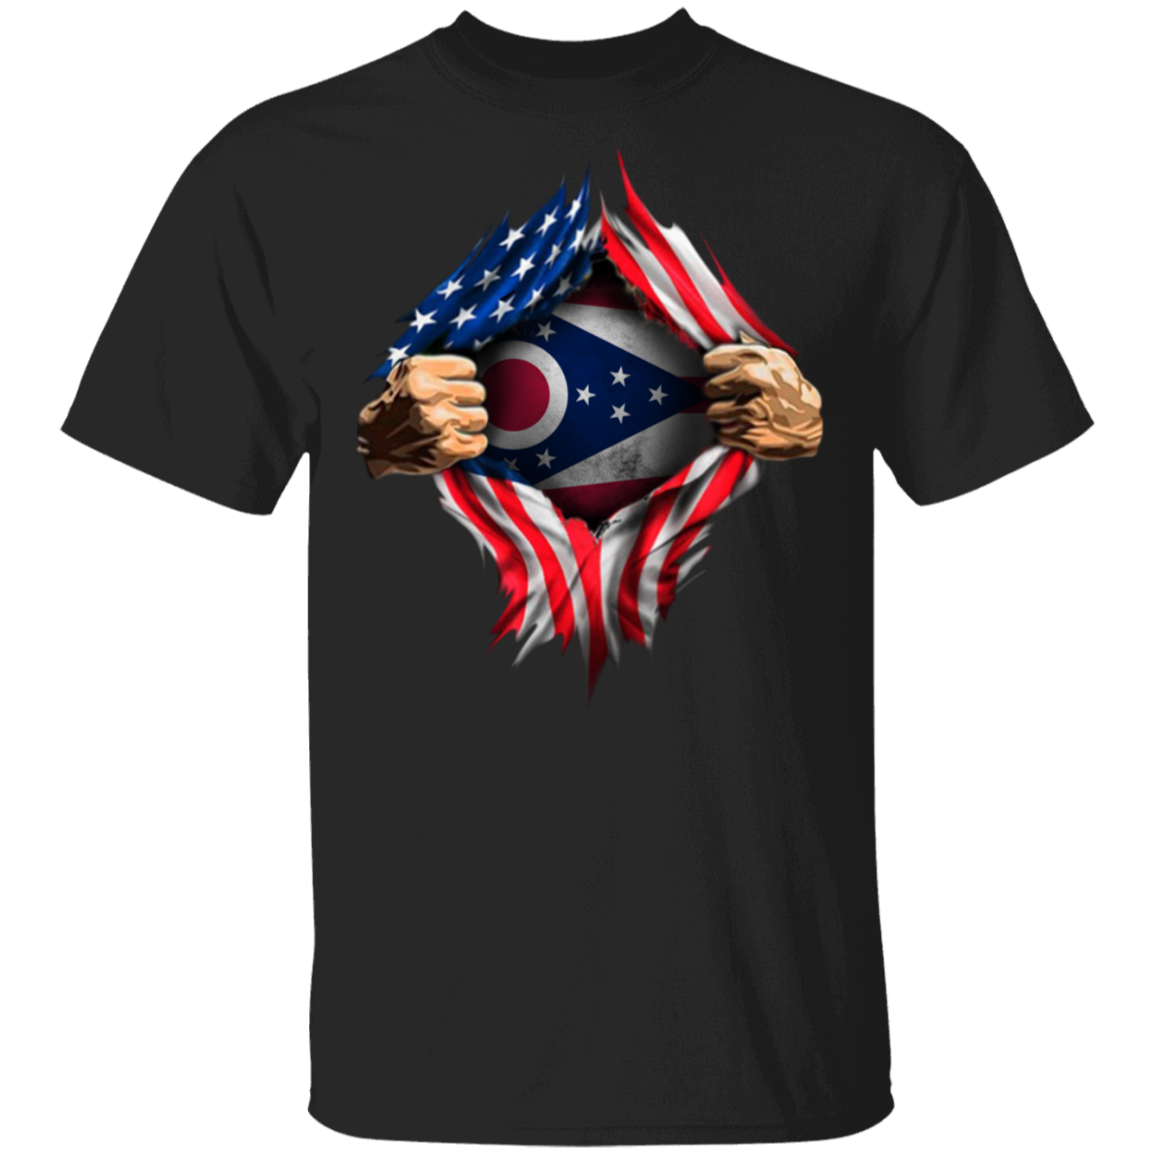 Ohio Heartbeat Inside American Flag T-Shirt 4th Of July Shirt Ideas Patriotic Gifts